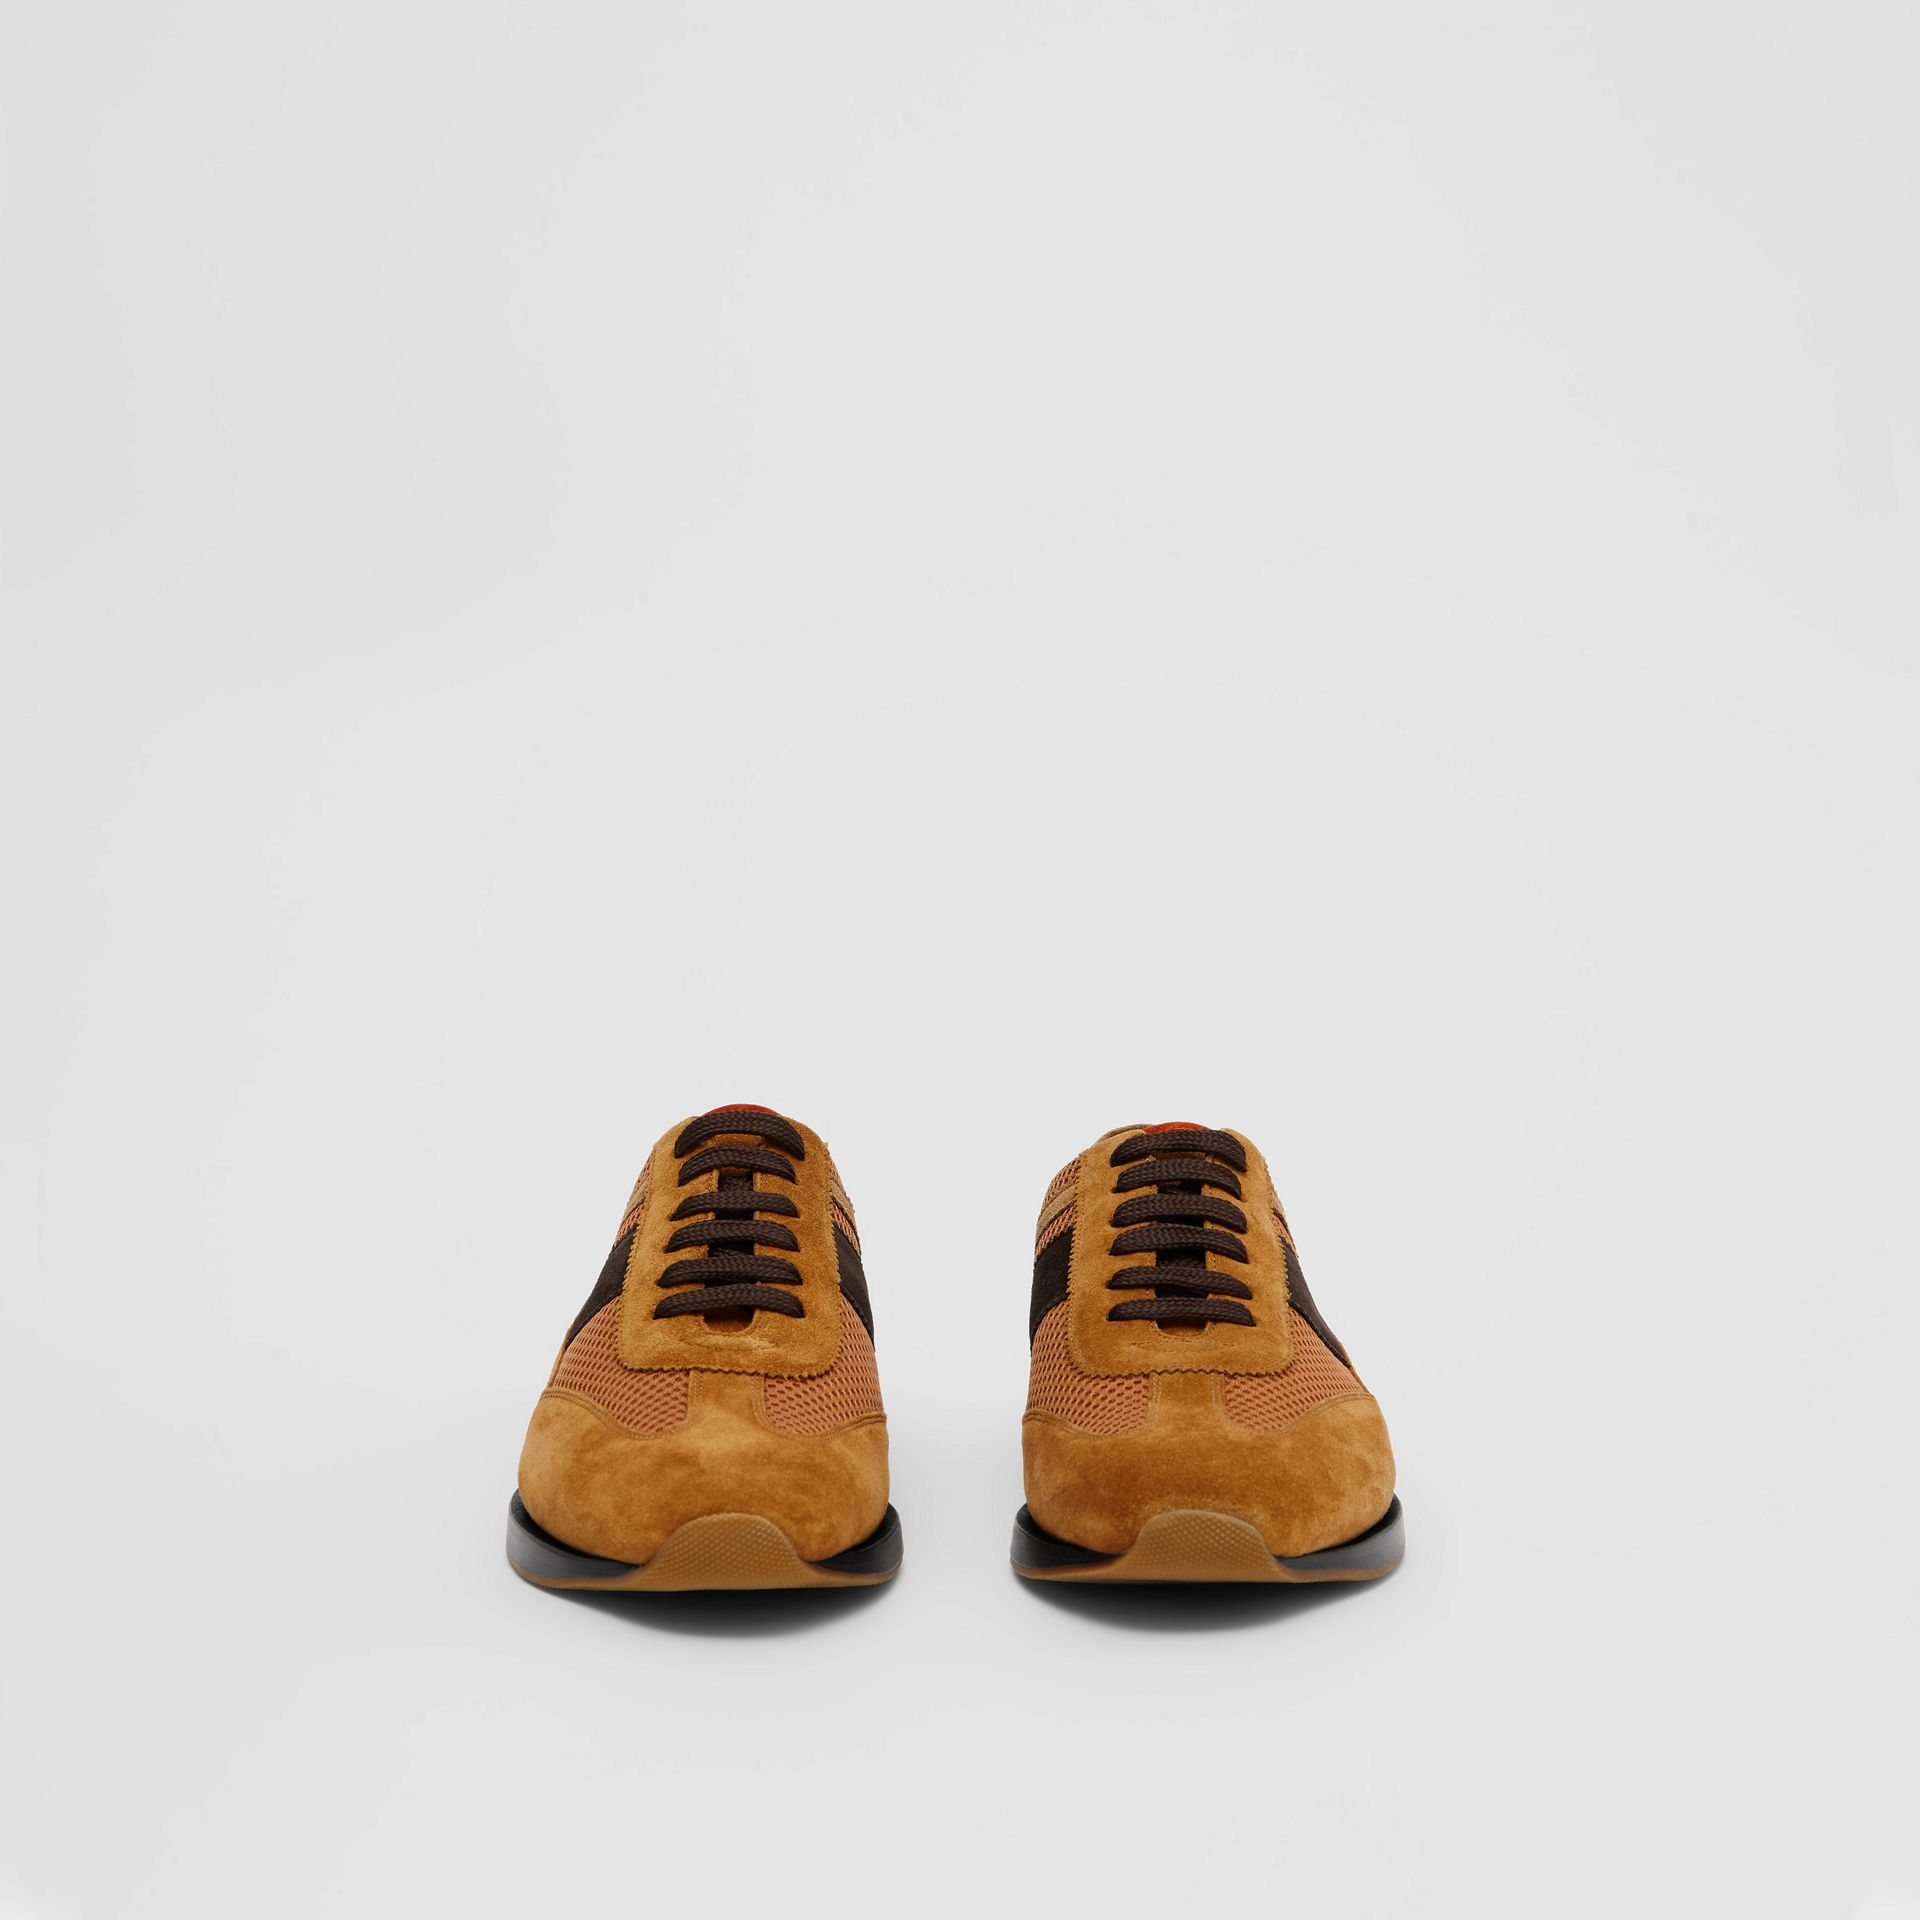 Mesh Panel Suede Lace-up Shoes in Mix Tan - Men | Burberry United Kingdom - gallery image 2